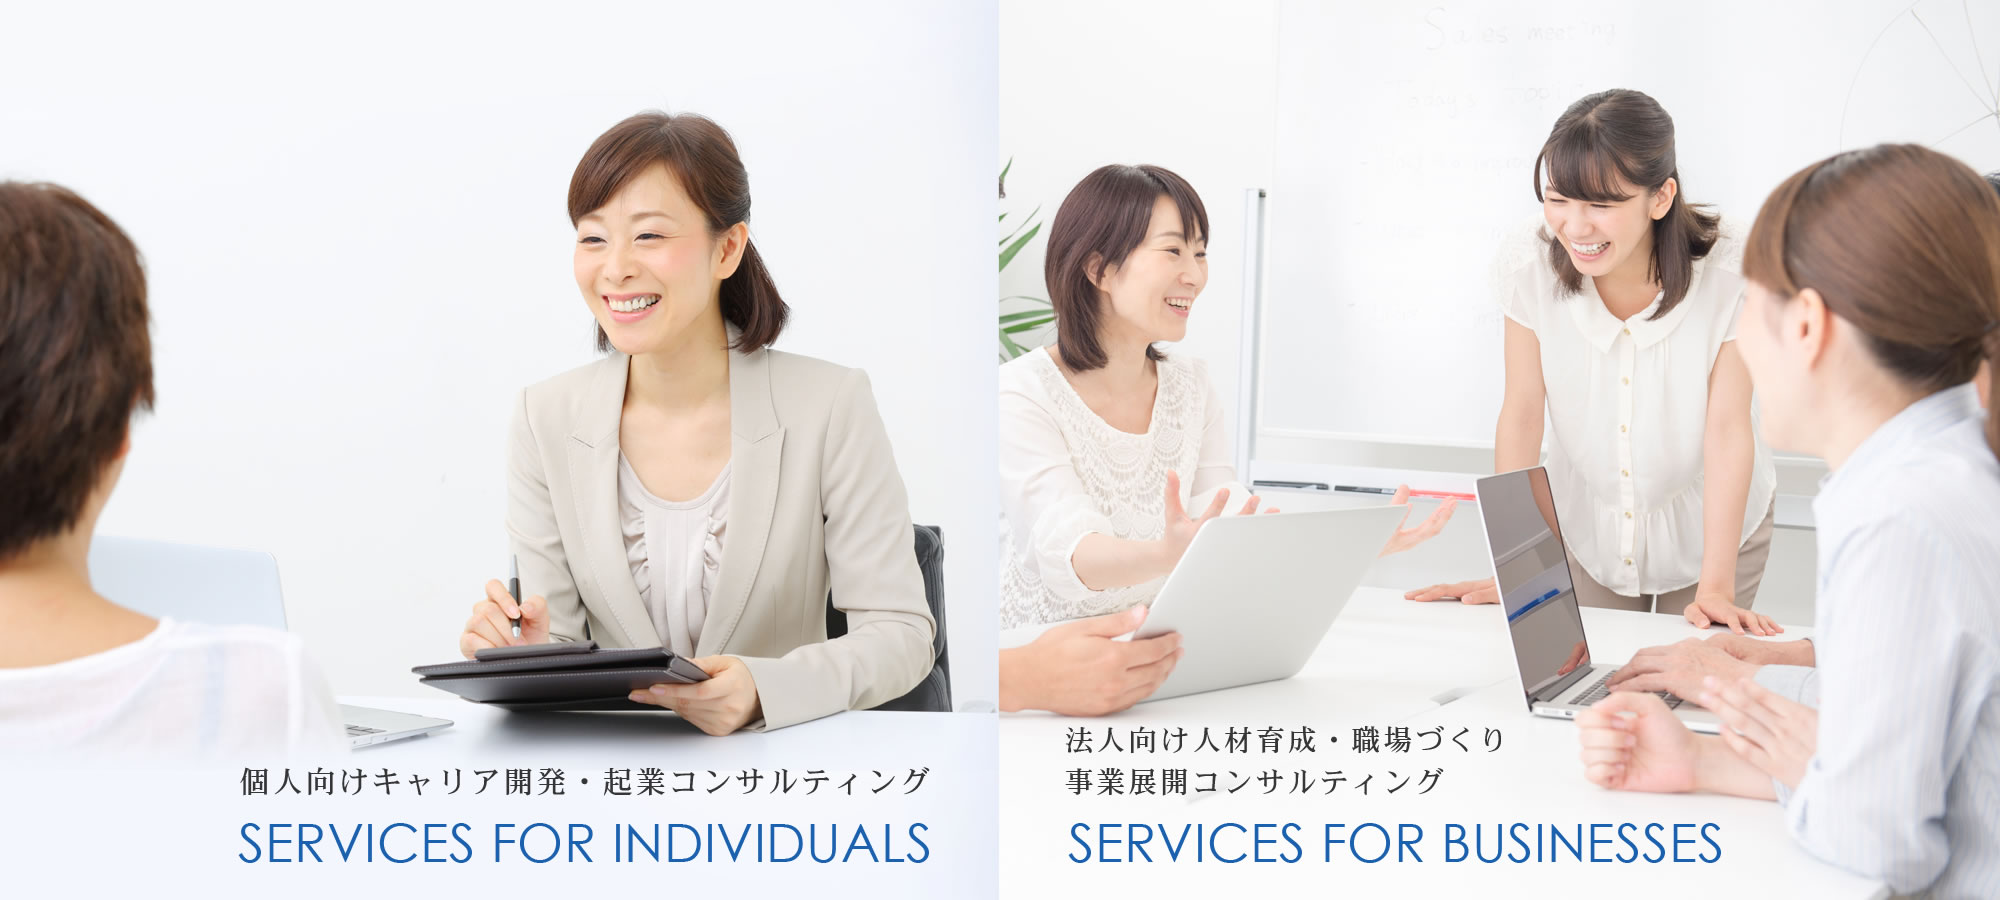 SERVICES FOR INDIVIDUALS 個人向けキャリア開発・起業コンサルティング SERVICES FOR BUSINESSES 法人向け人材育成・職場づくり・事業展開コンサルティング